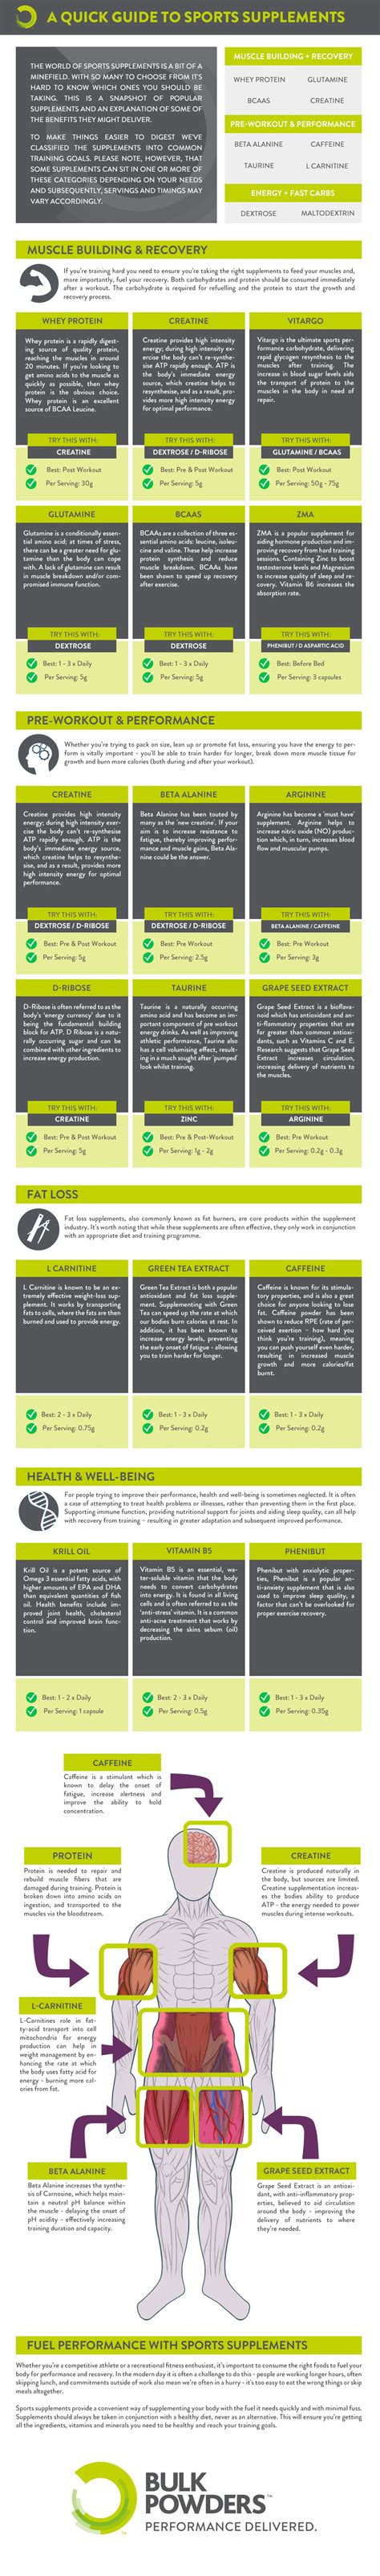 supplement infographic guide to sports supplements infographic best infographics